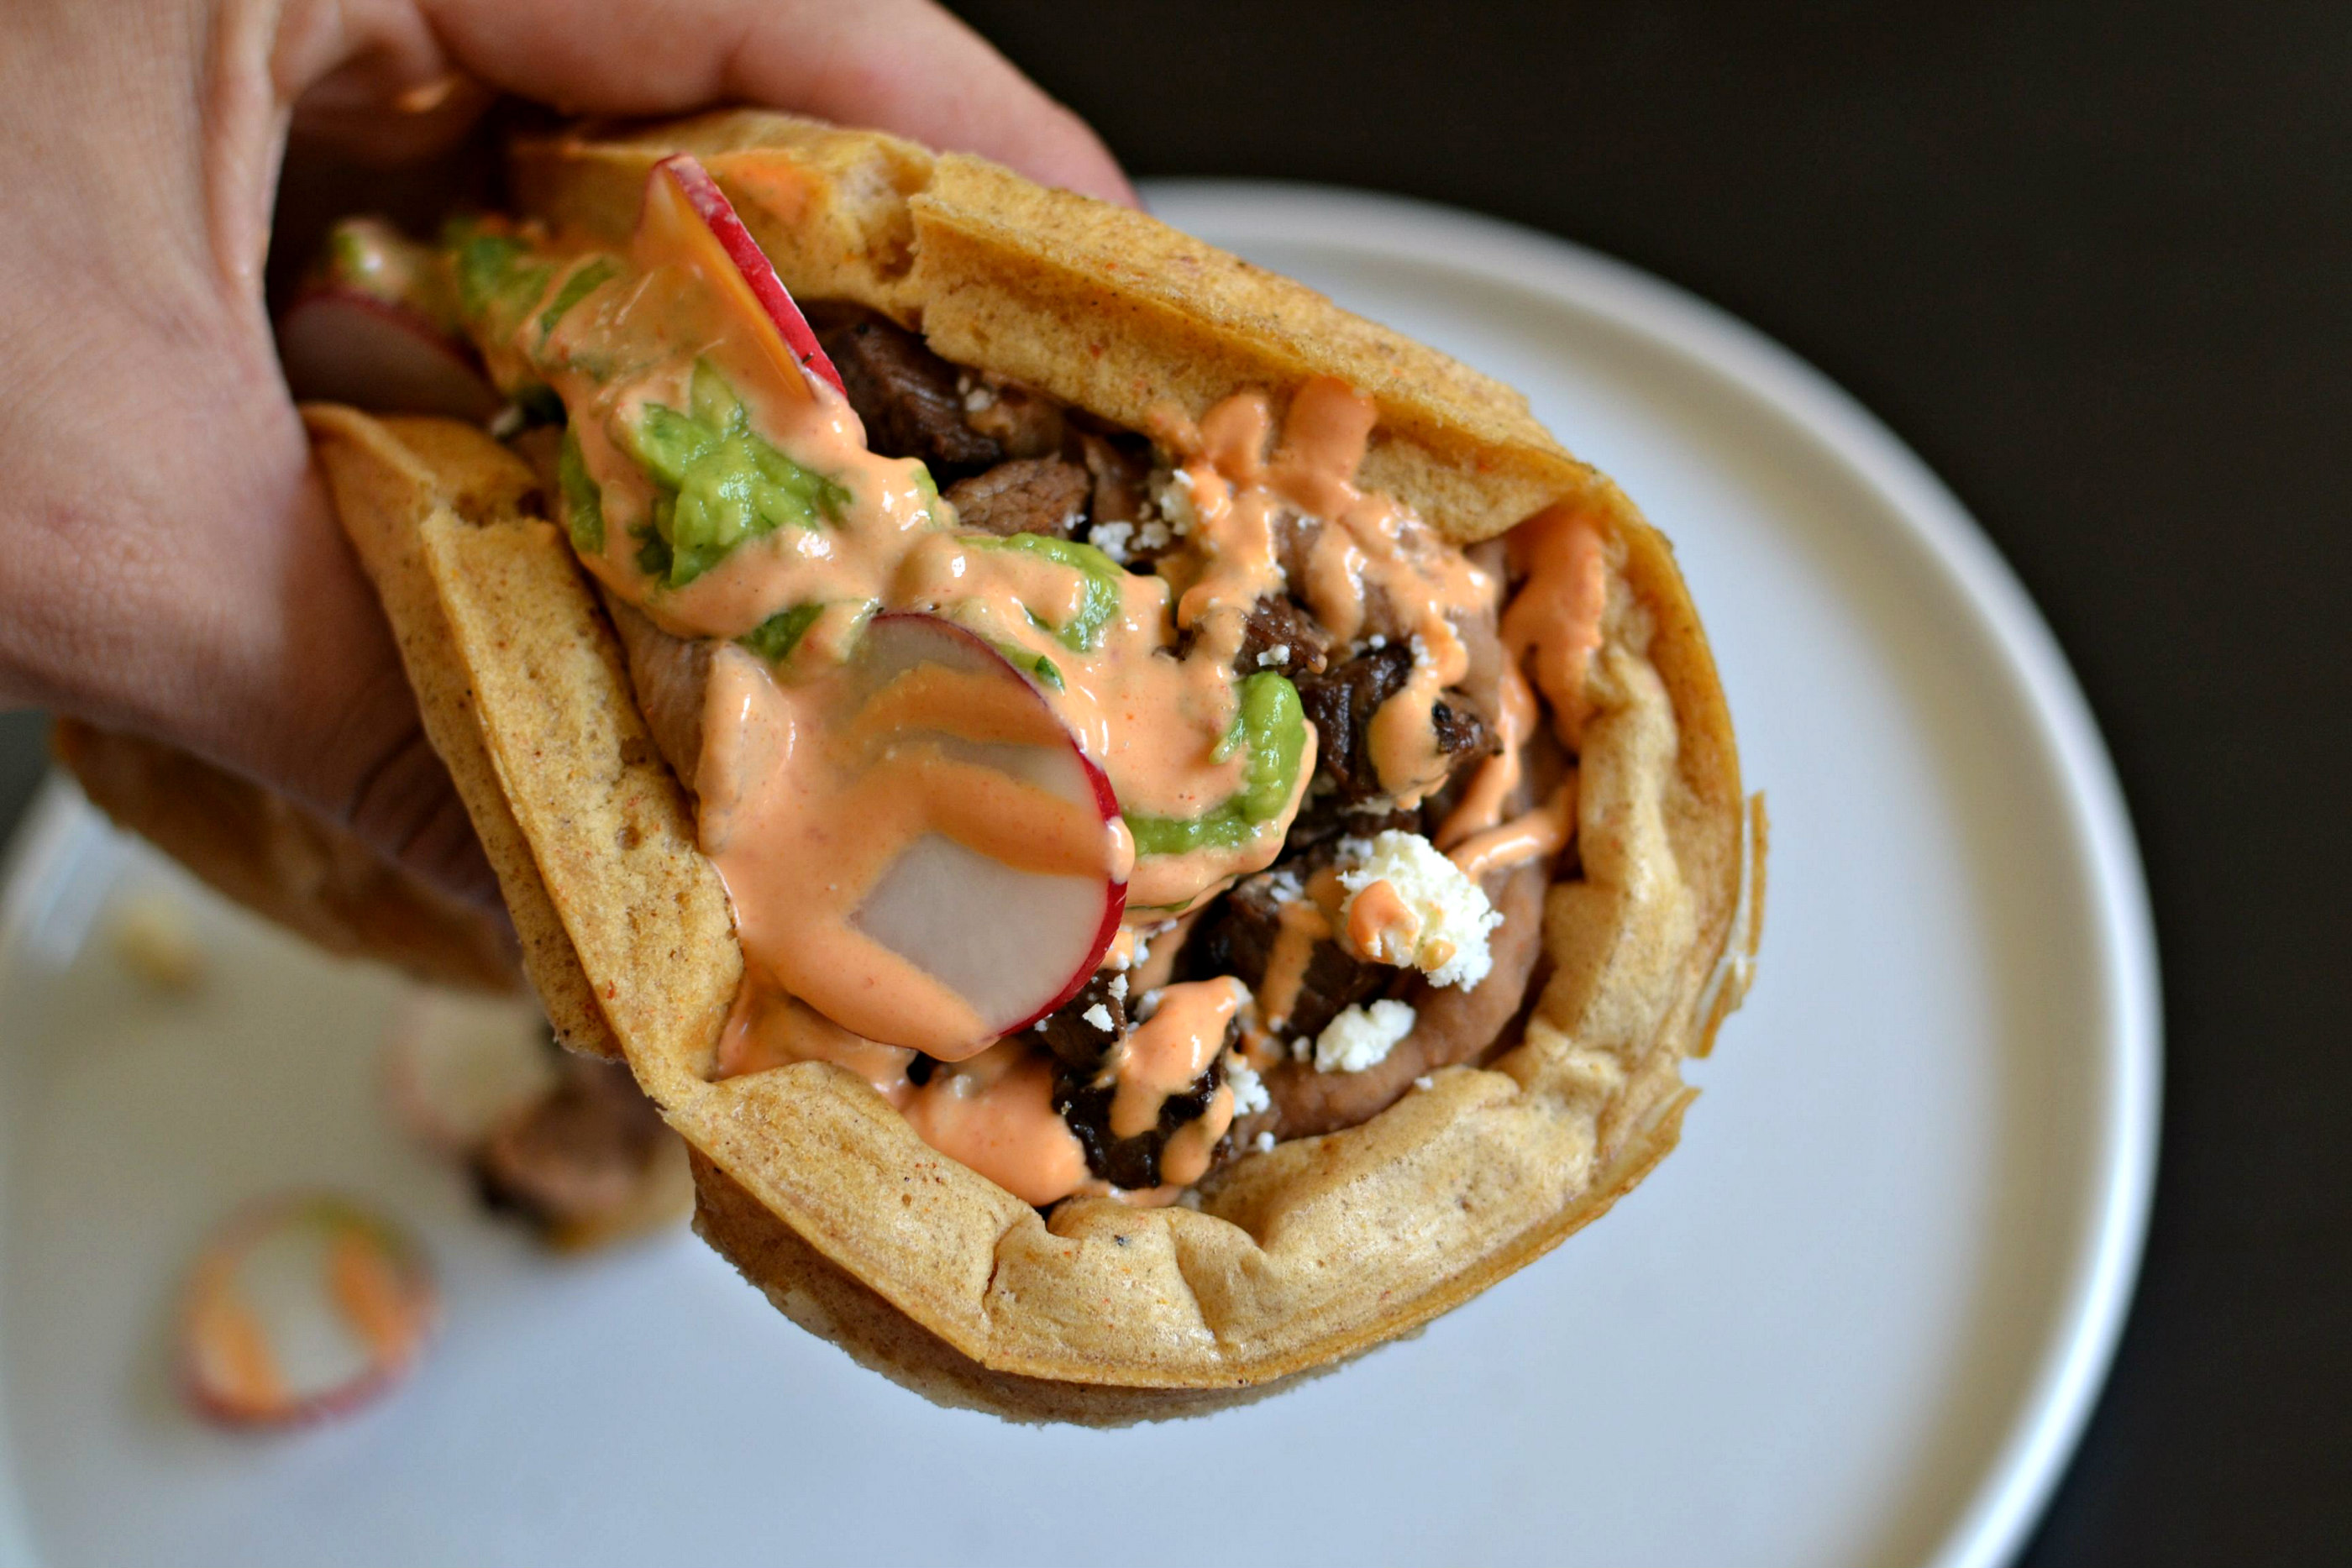 Here's How To Make A Mexican Beer Waffle Topped With Marinated Carne Asada